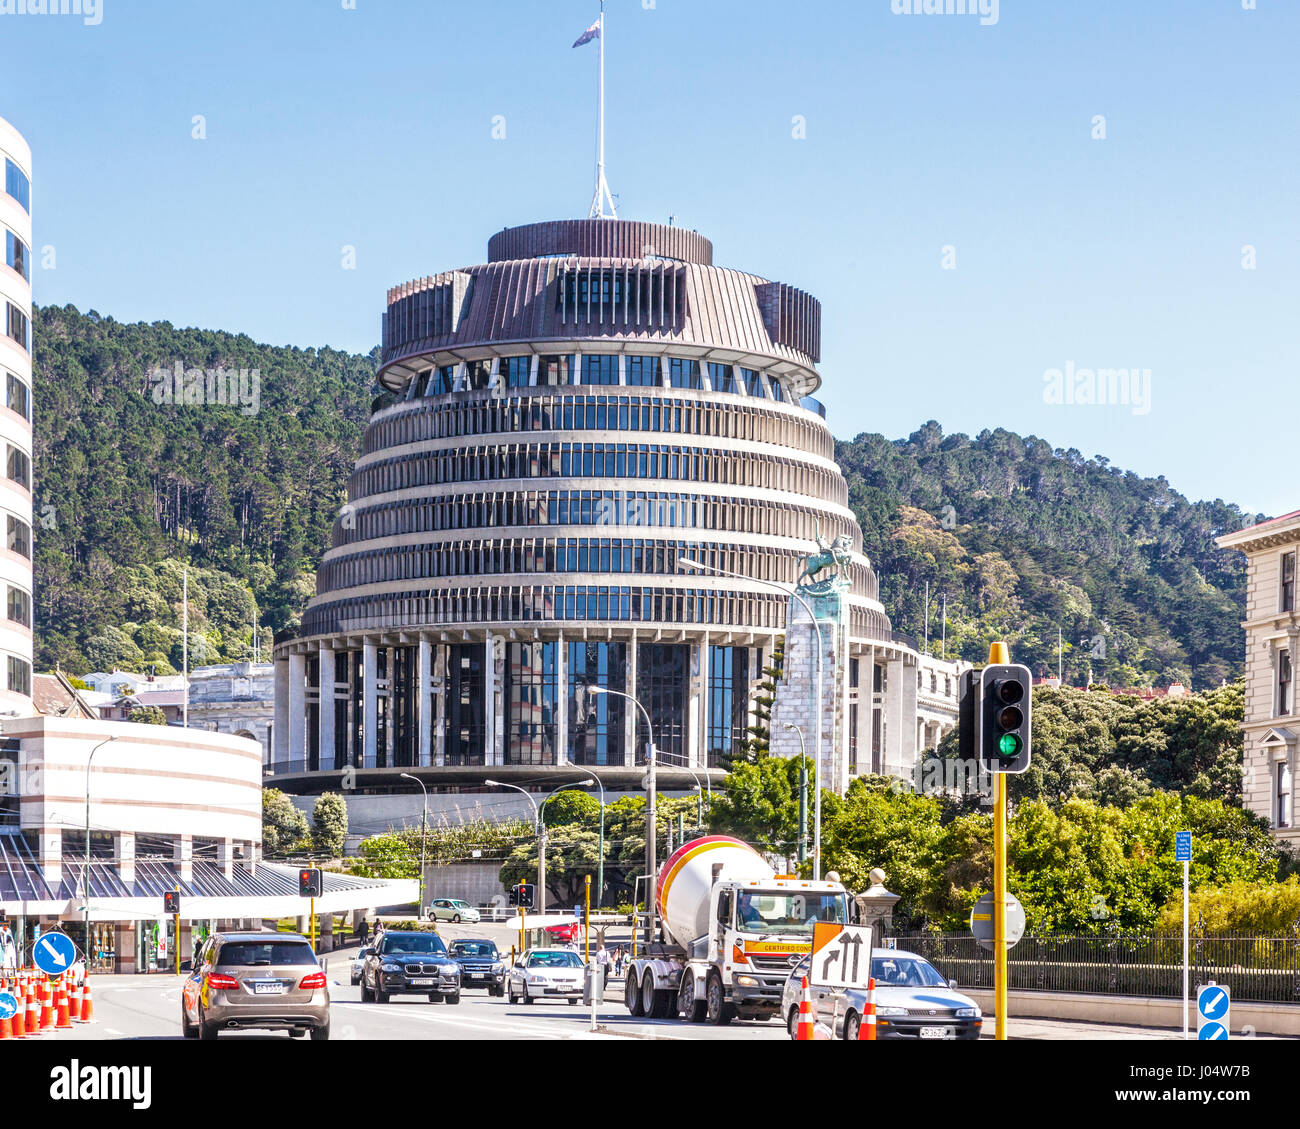 The Beehive, the parliamentary offices of New Zealand's government, and Whitmore Street, Wellington. - Stock Image